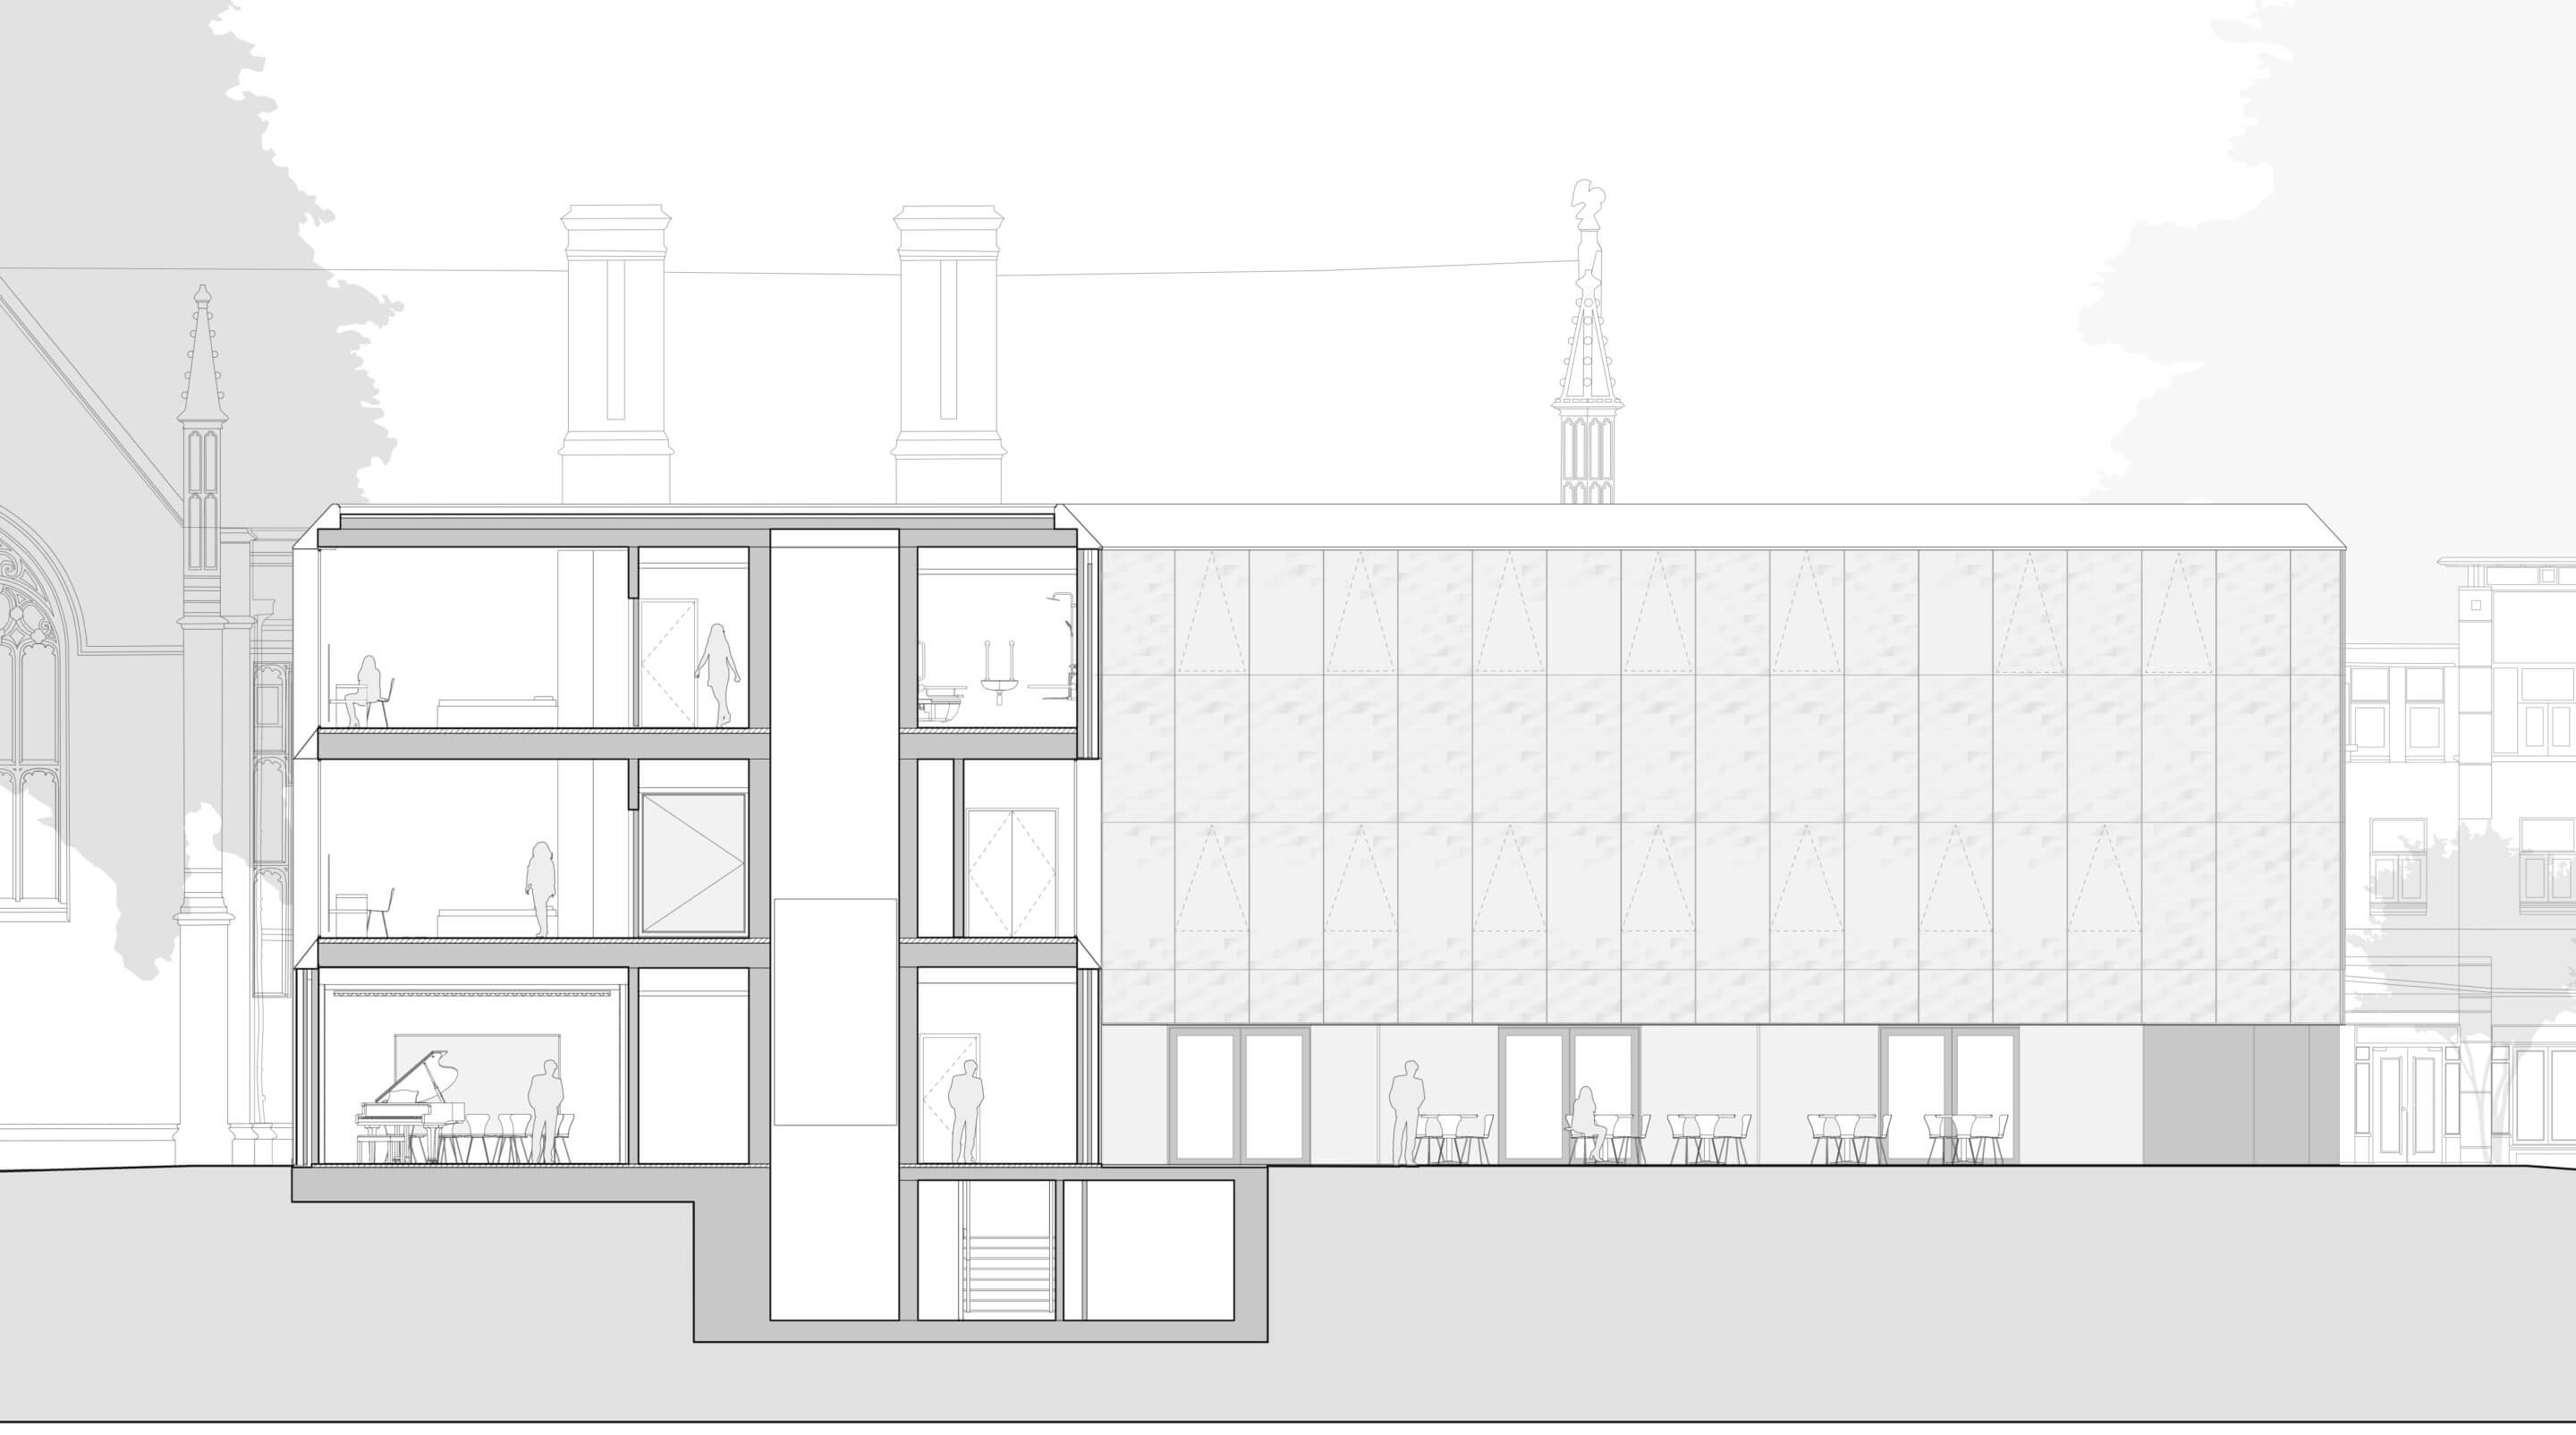 A cross section diagram of the new complex